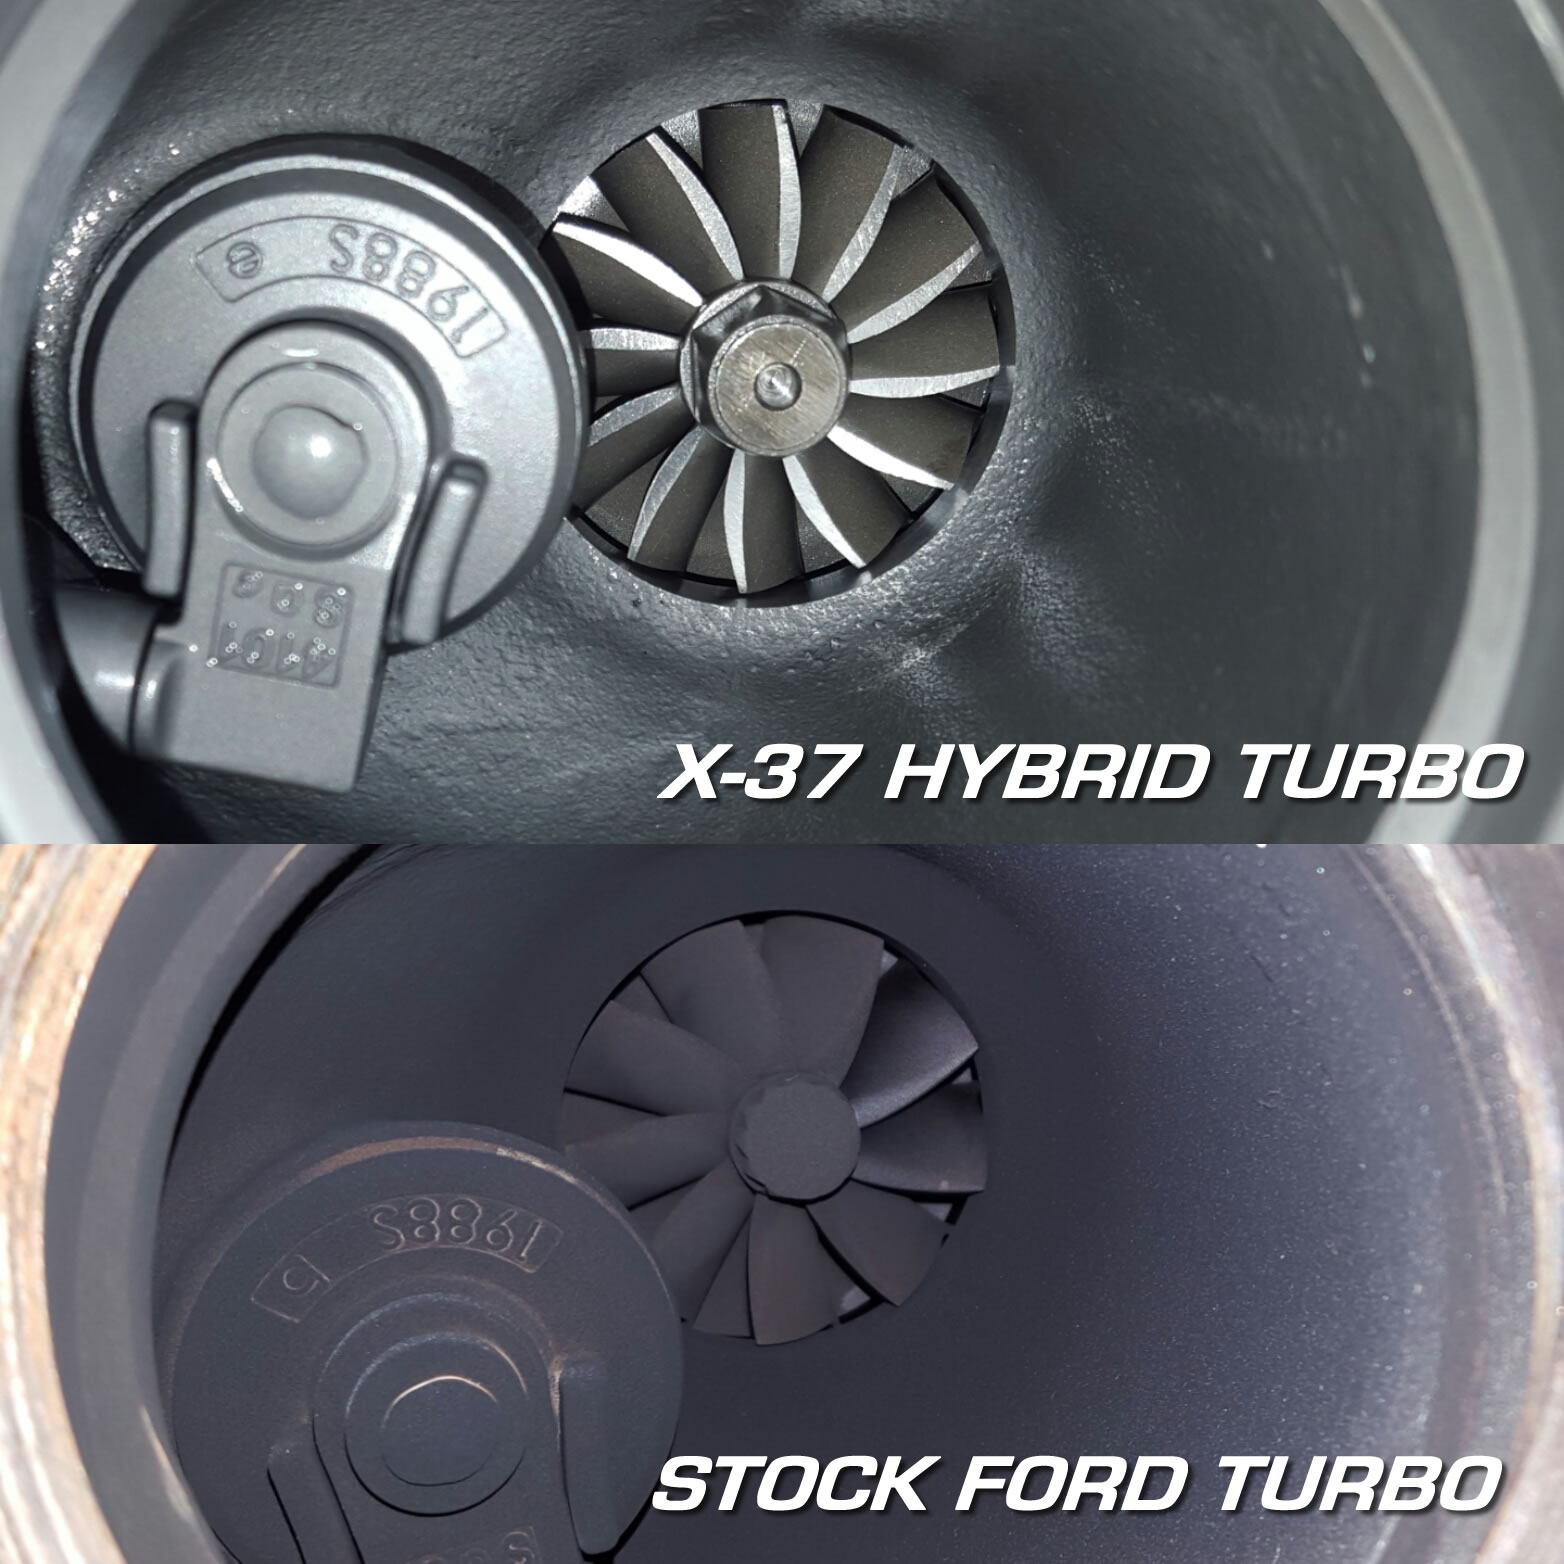 http://www.pumaspeed.co.uk/saved/Focus_st250_x-37_hybrid_comparison.jpg